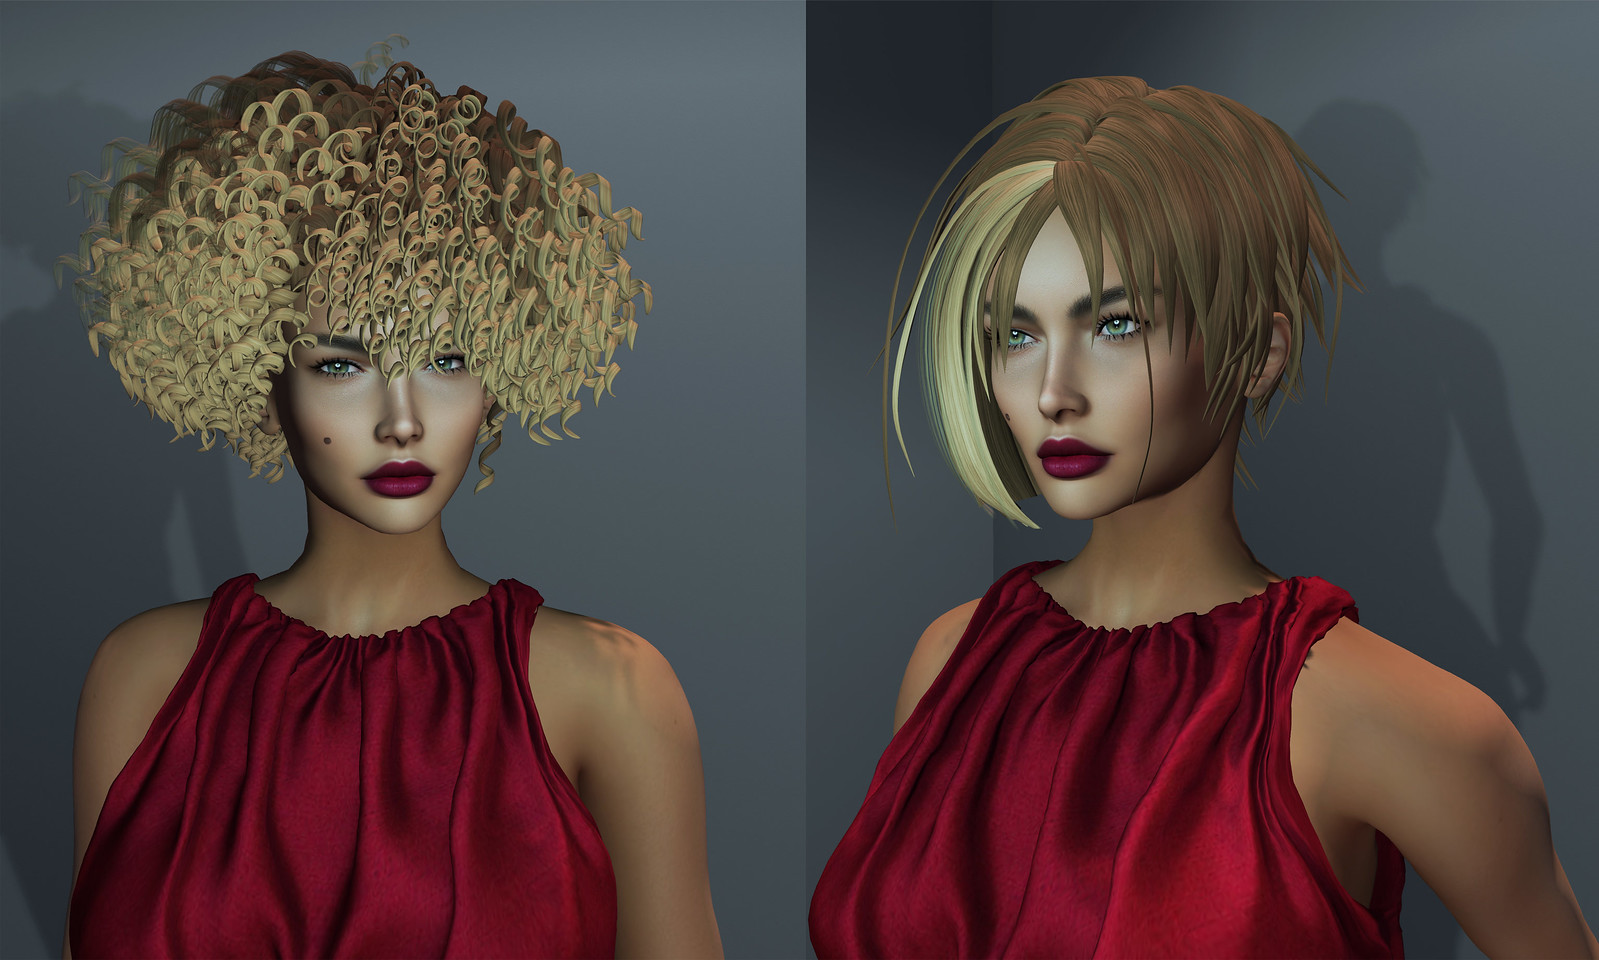 Hair Fair 17 - Vanity Hair & KoKoLores